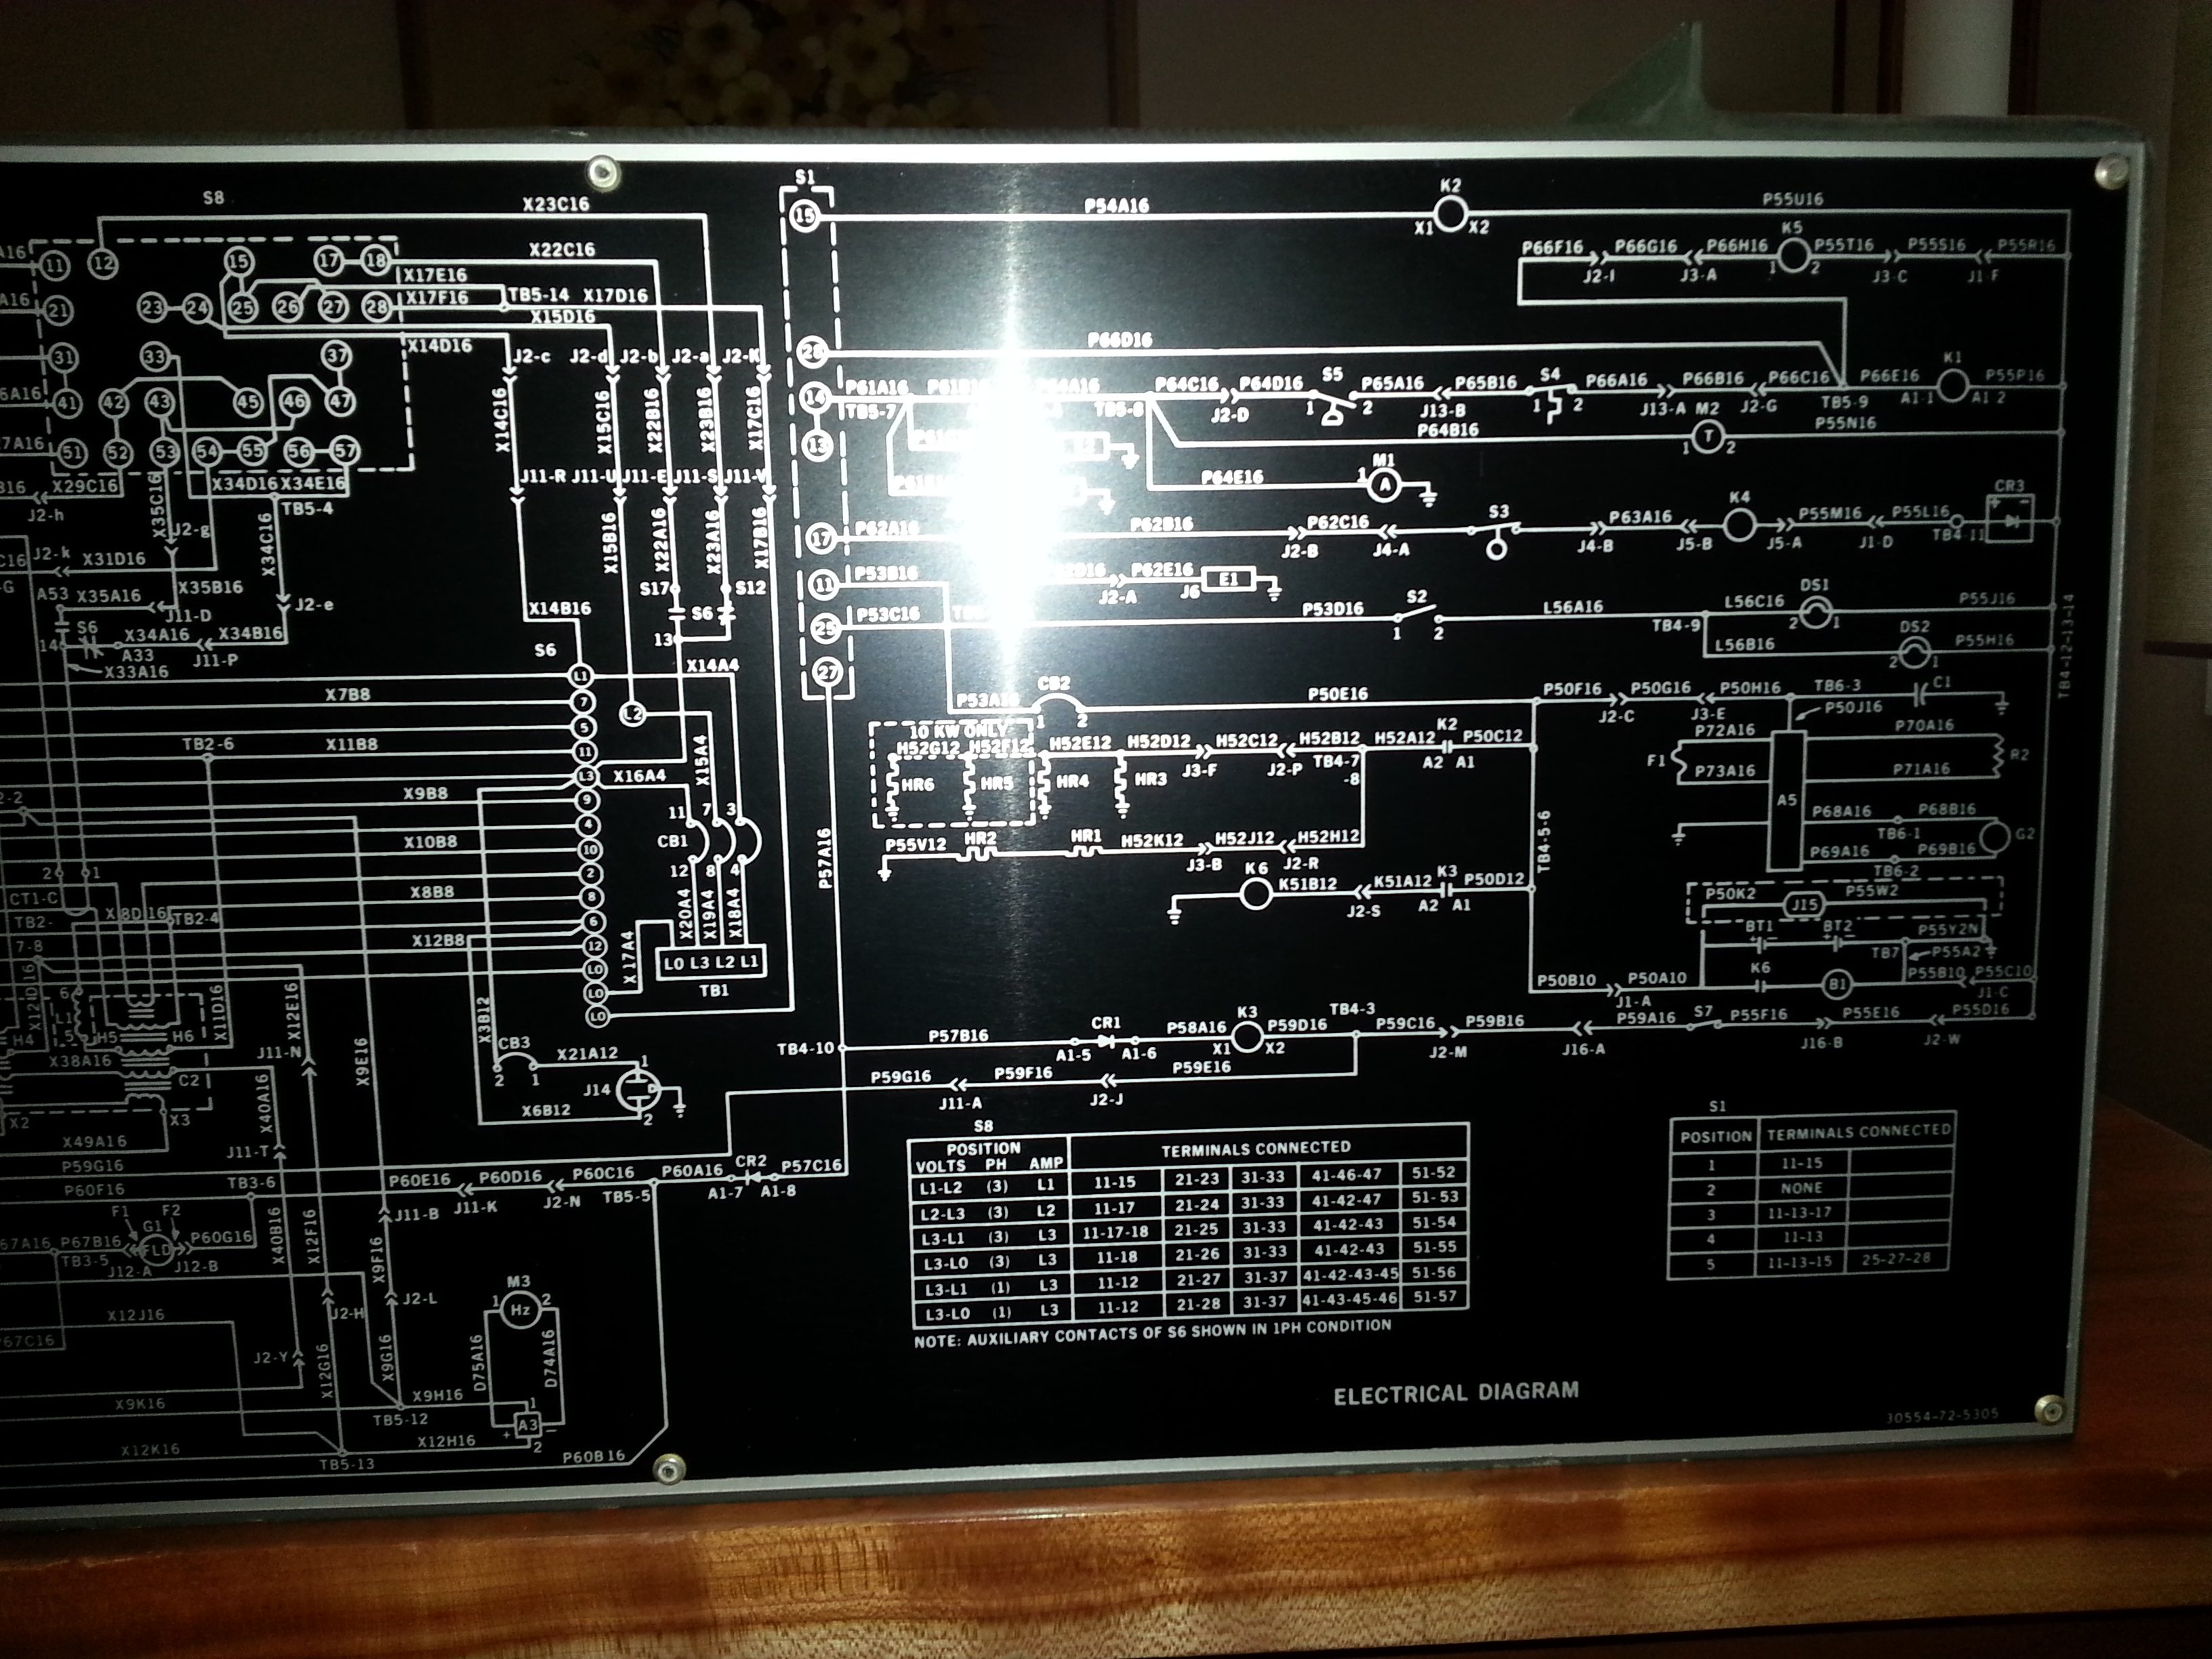 SK_3389] How To Wire A Mep002A Or Mep003A Diesel Generator Green Mountain  Download DiagramAlia Bdel Joni Hete Dome Mohammedshrine Librar Wiring 101